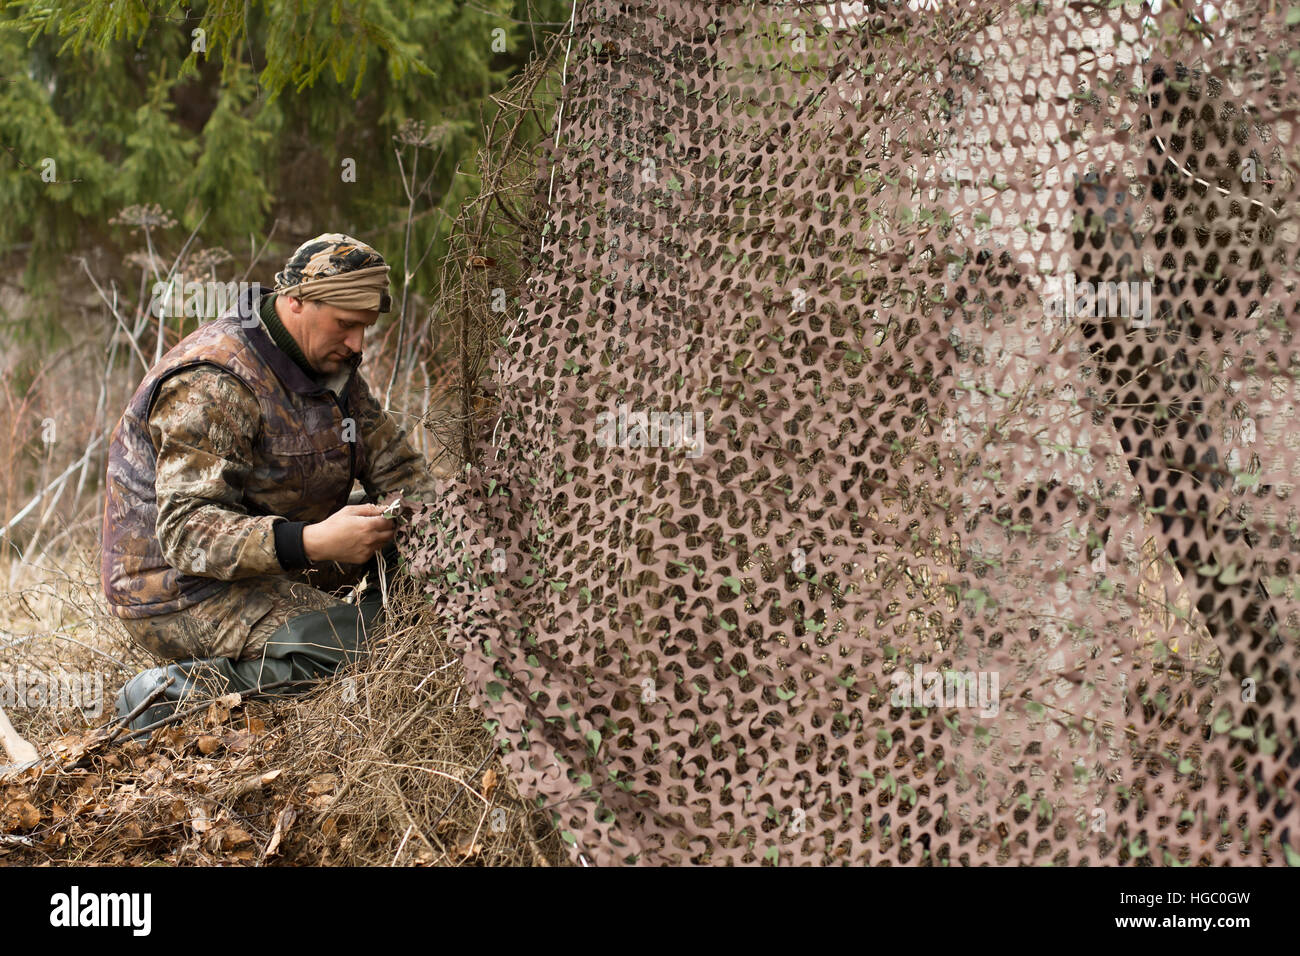 hunter and camouflage netting - Stock Image